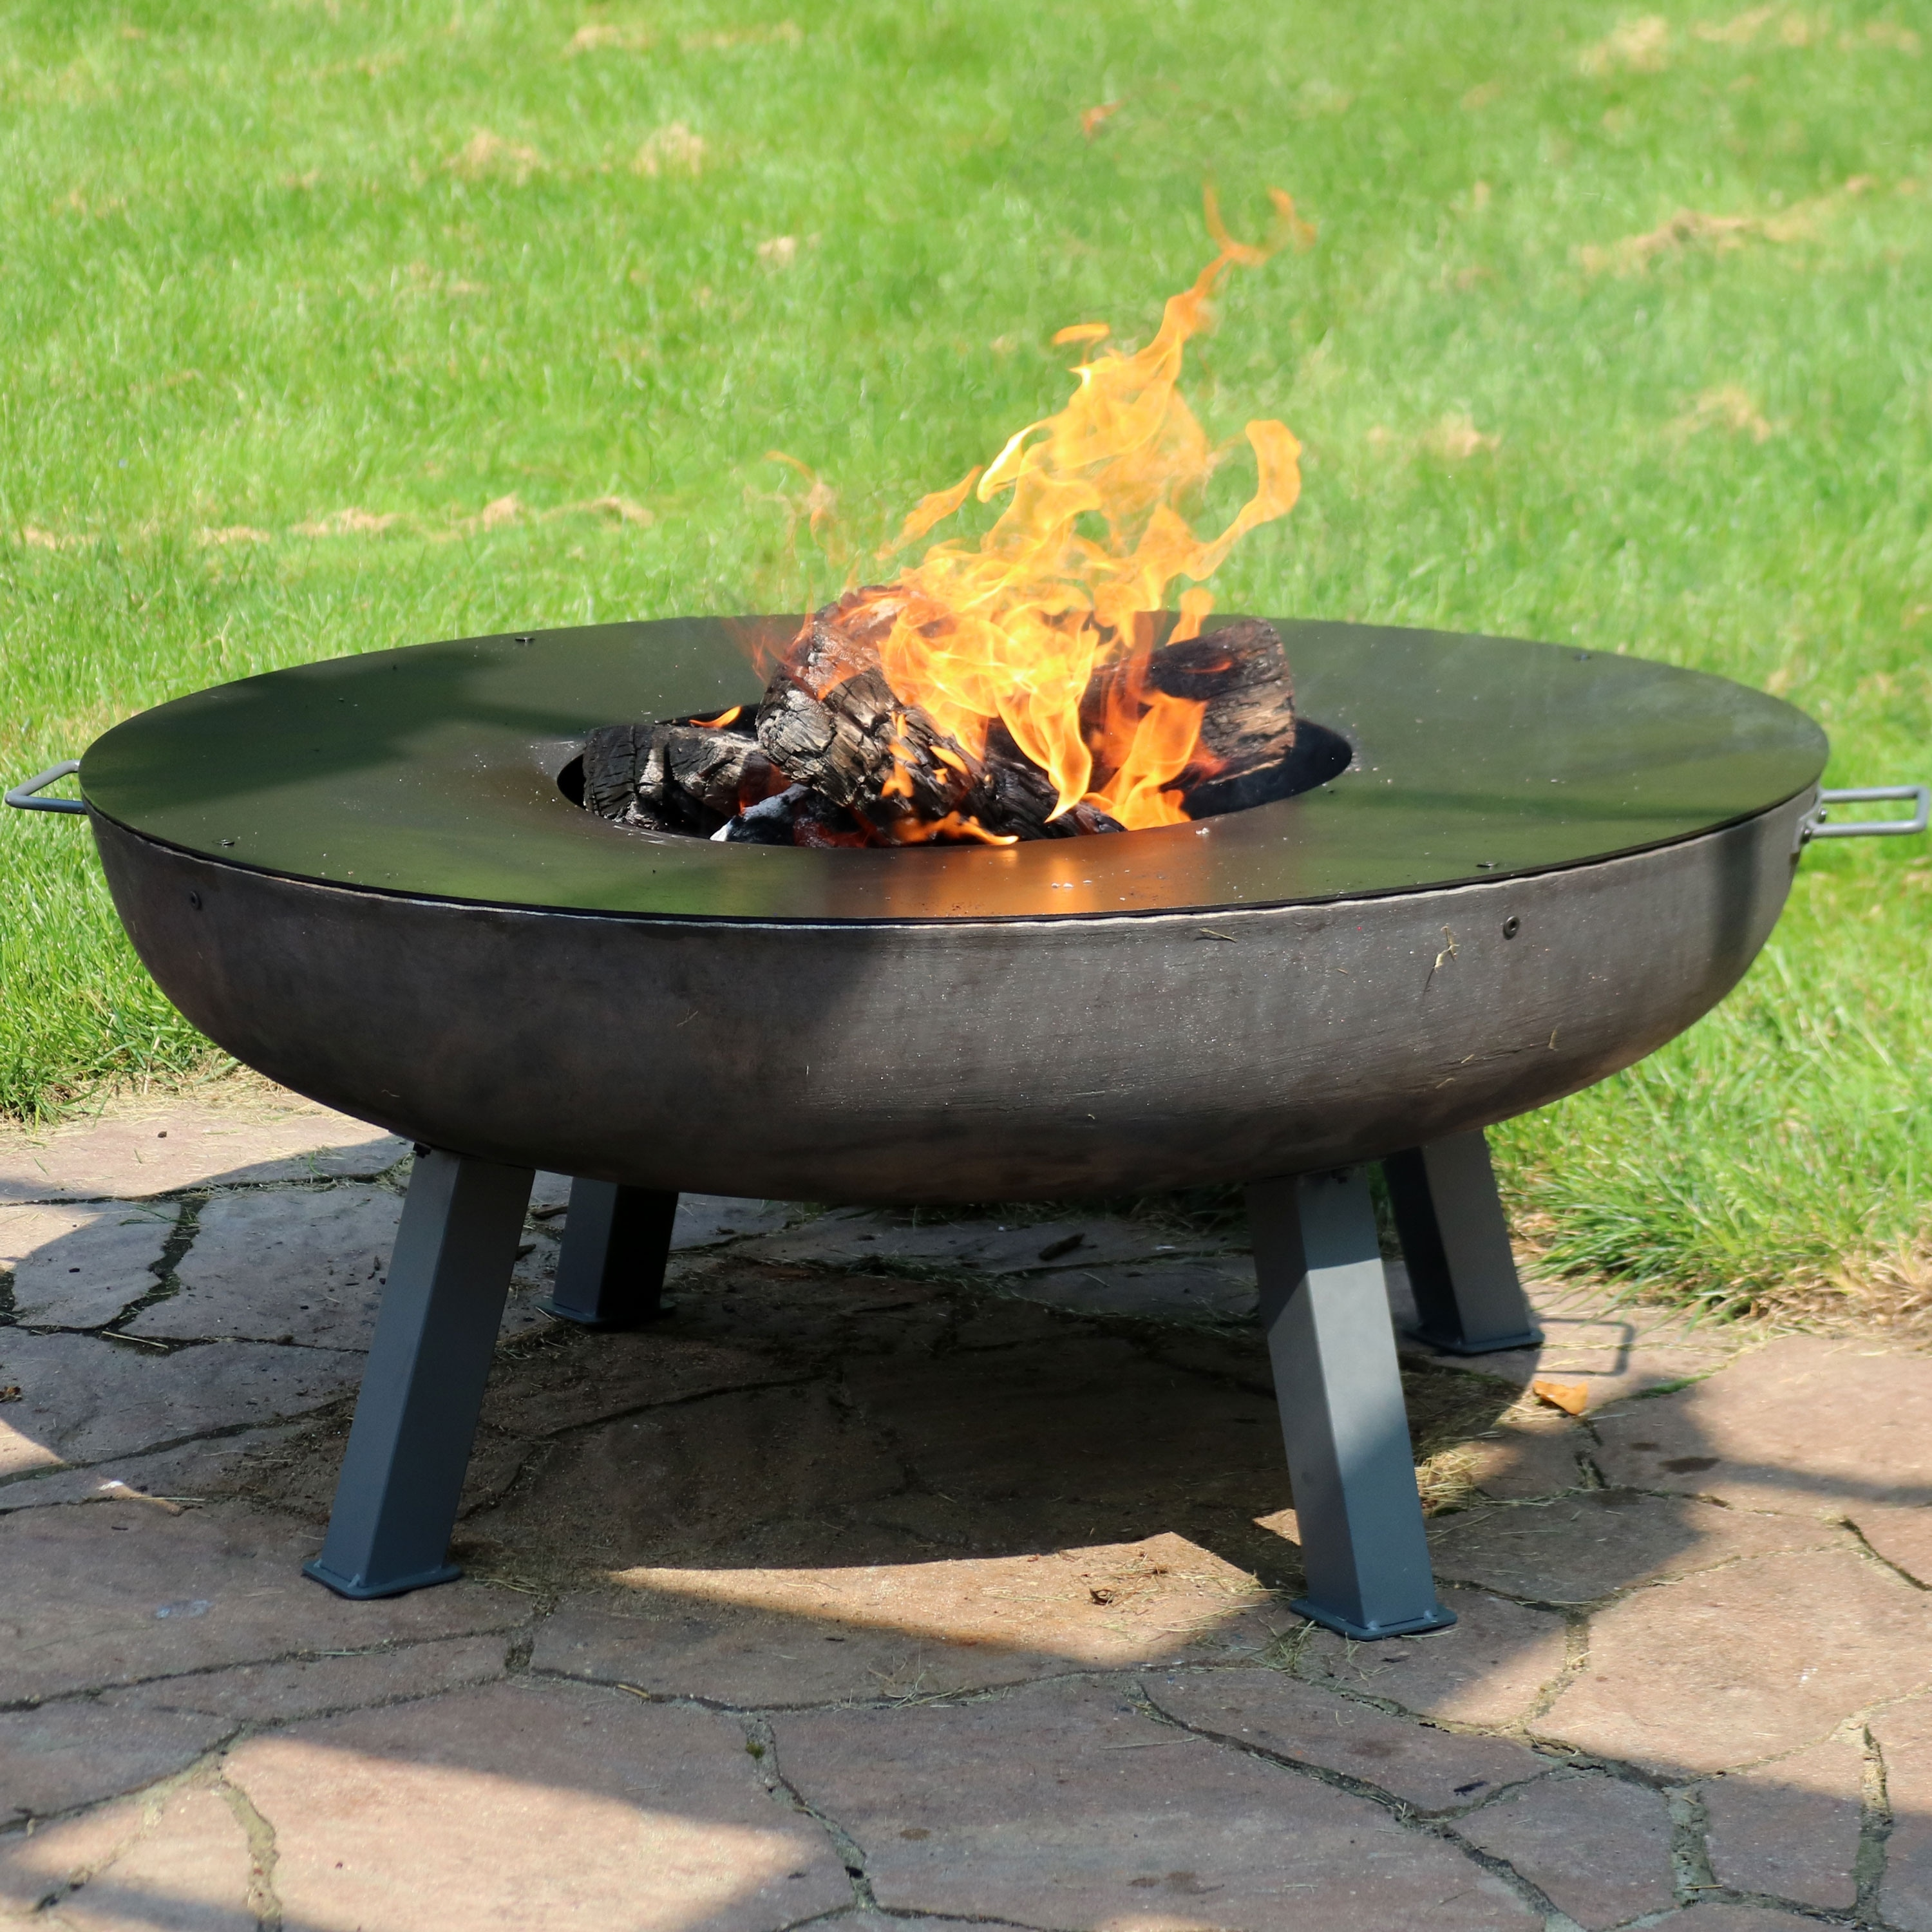 Image of: Shop Black Friday Deals On Sunnydaze 40 Fire Pit Cast Iron Wood Burning Fire Bowl With Cooking Ledge Overstock 18826409